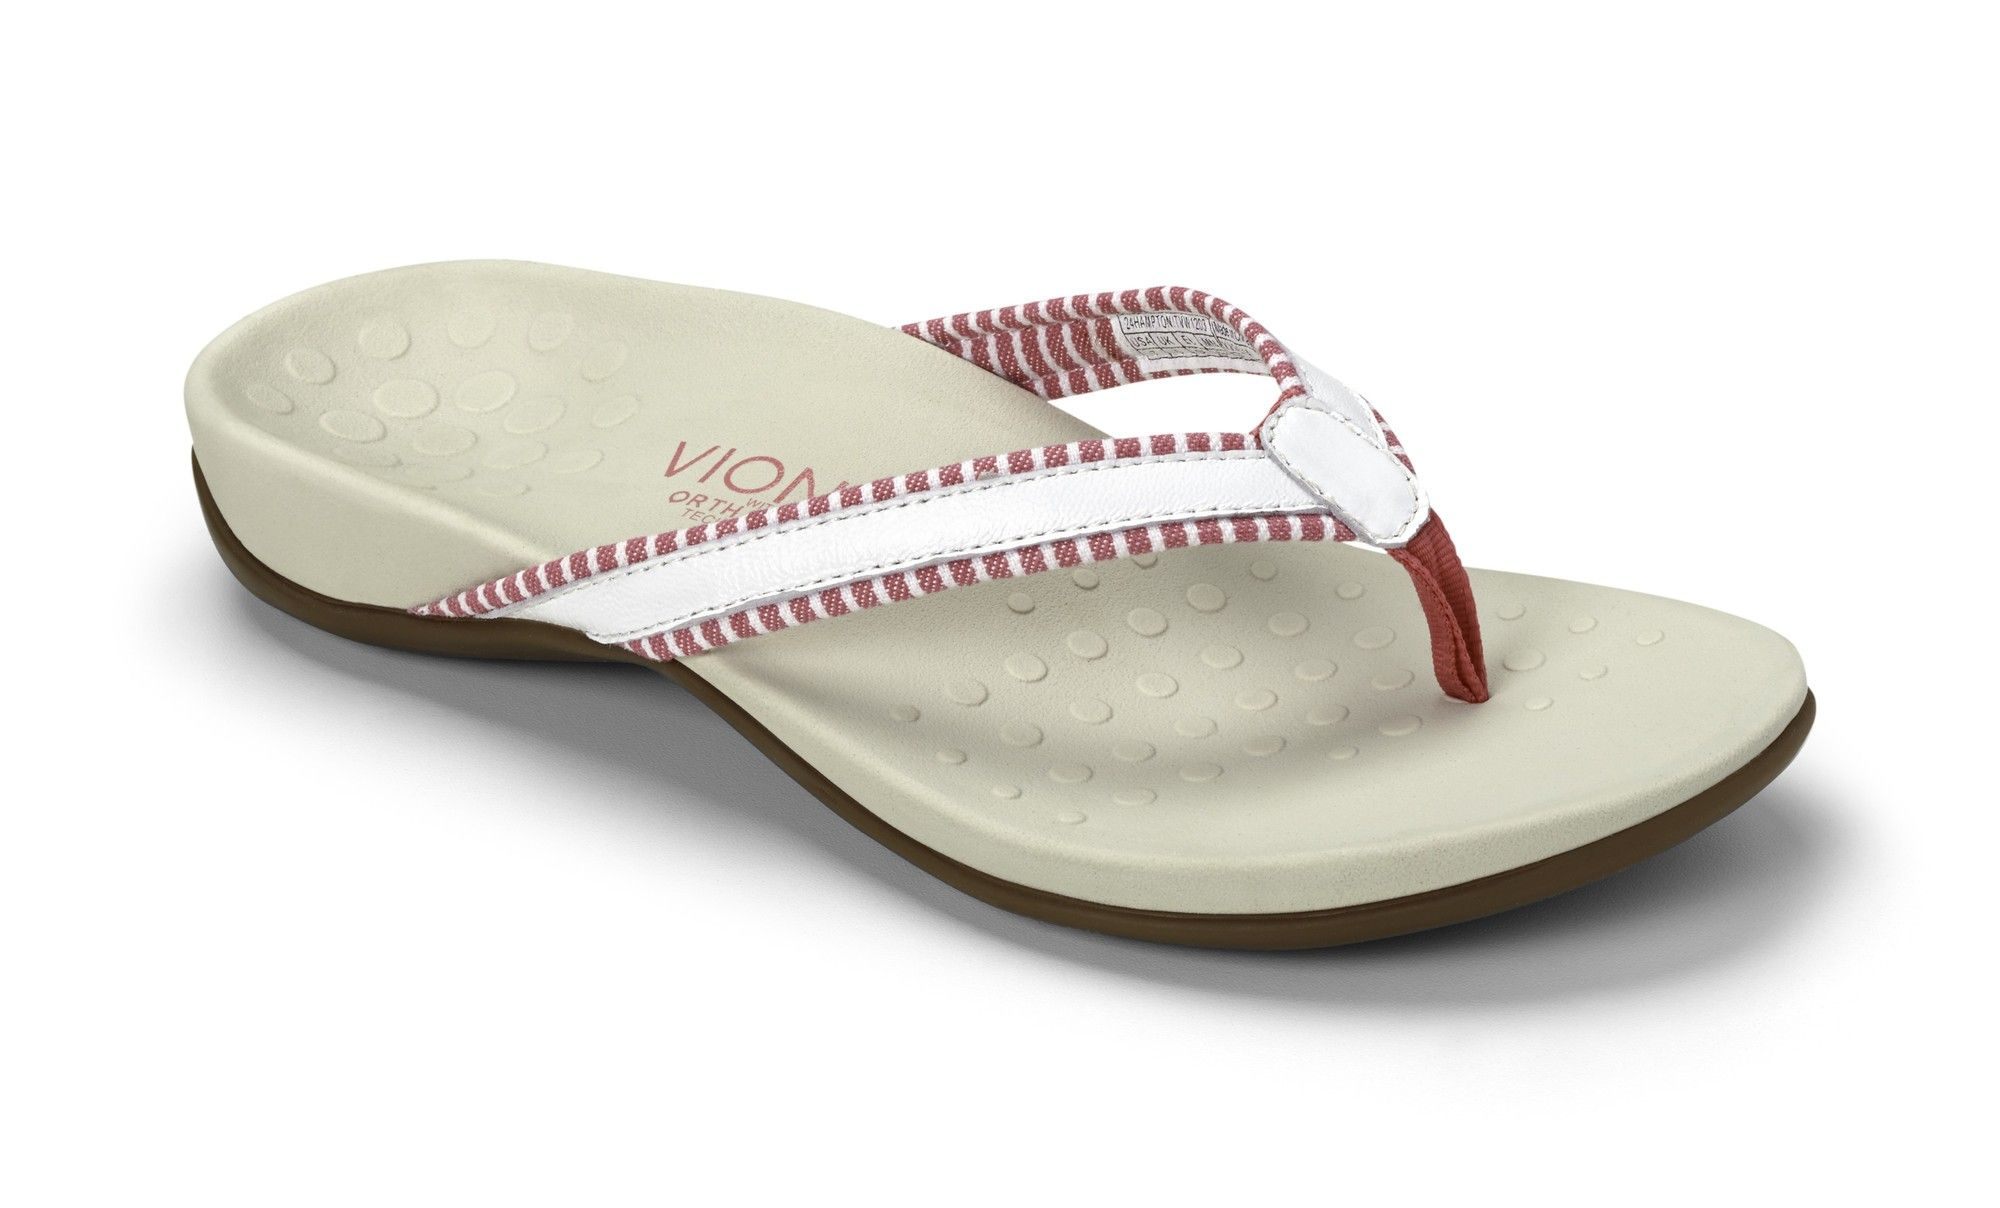 656a3820dbc634 Browse comfortable women s sandals and flip-flops with arch support from  Vionic.